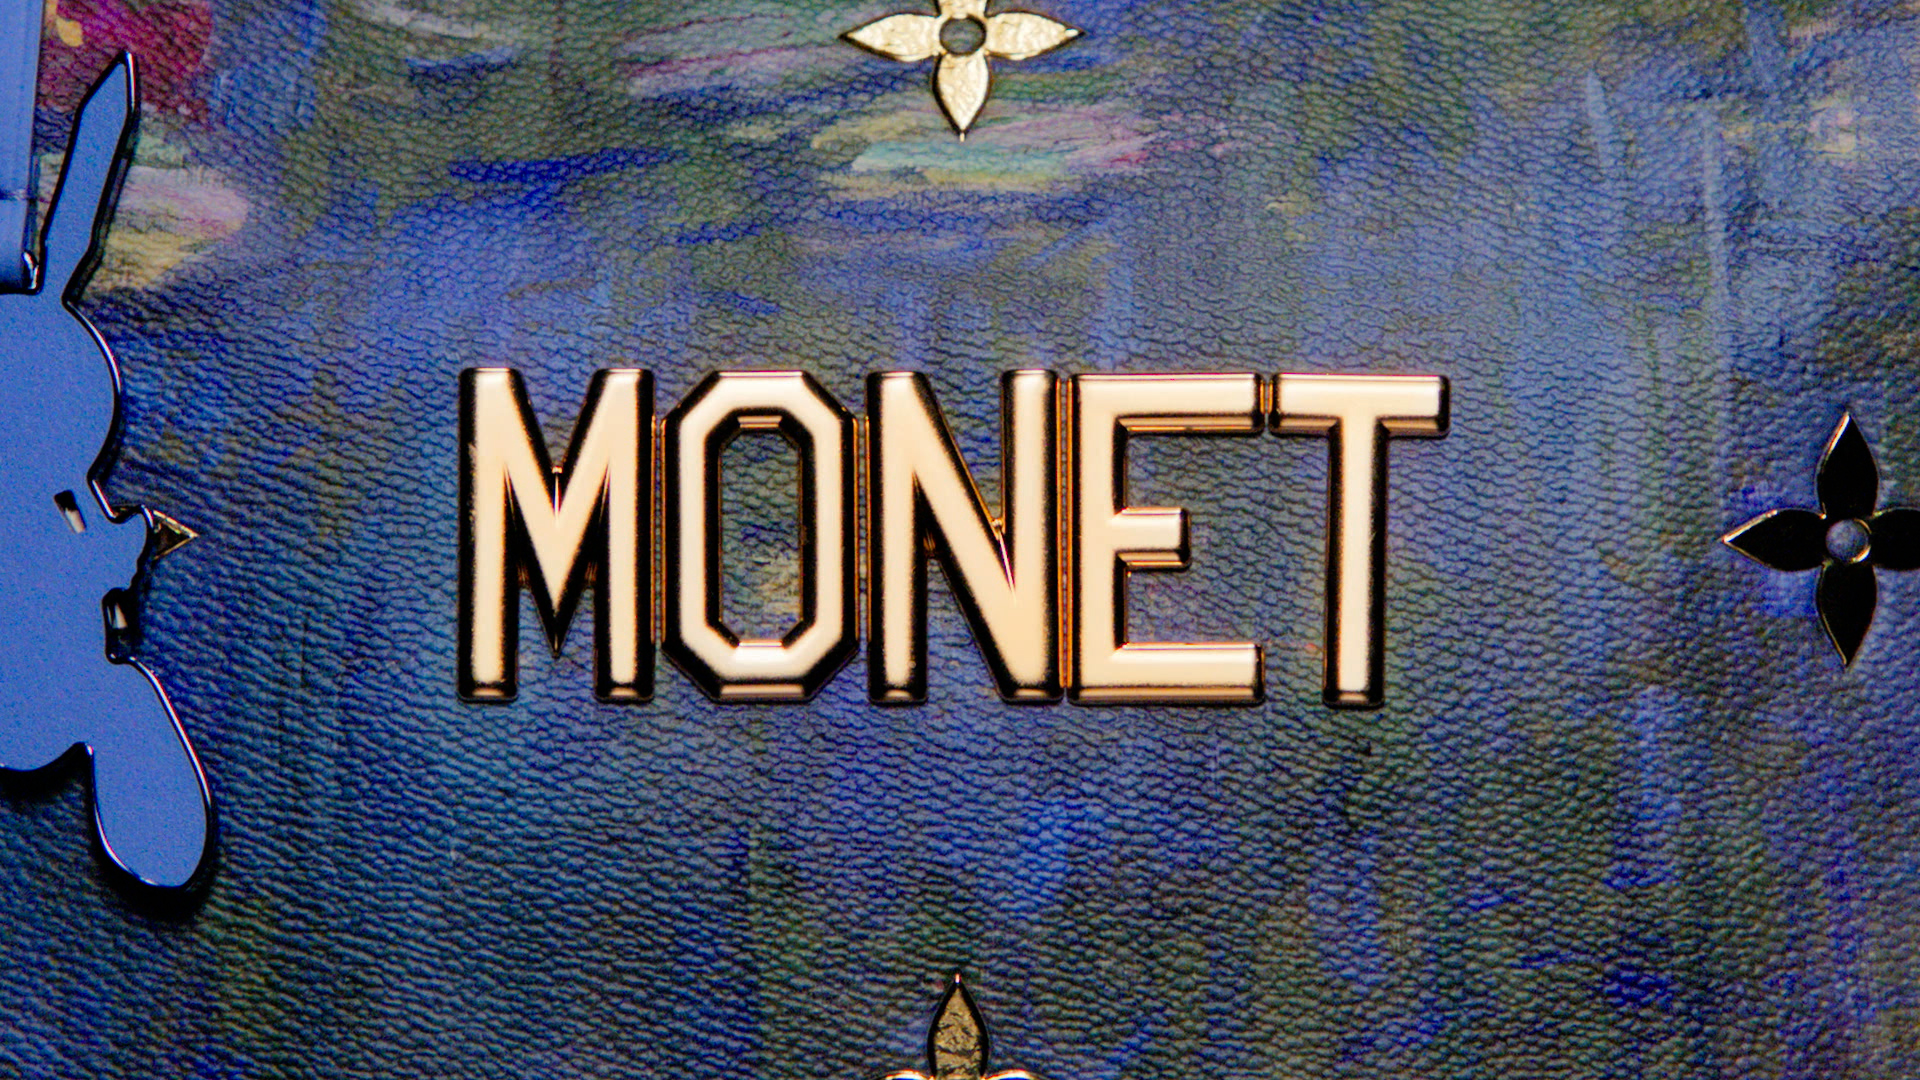 LV_Masters_PartyPeople_Softer_MONET_30_Uncens-ProRez_86961.jpg